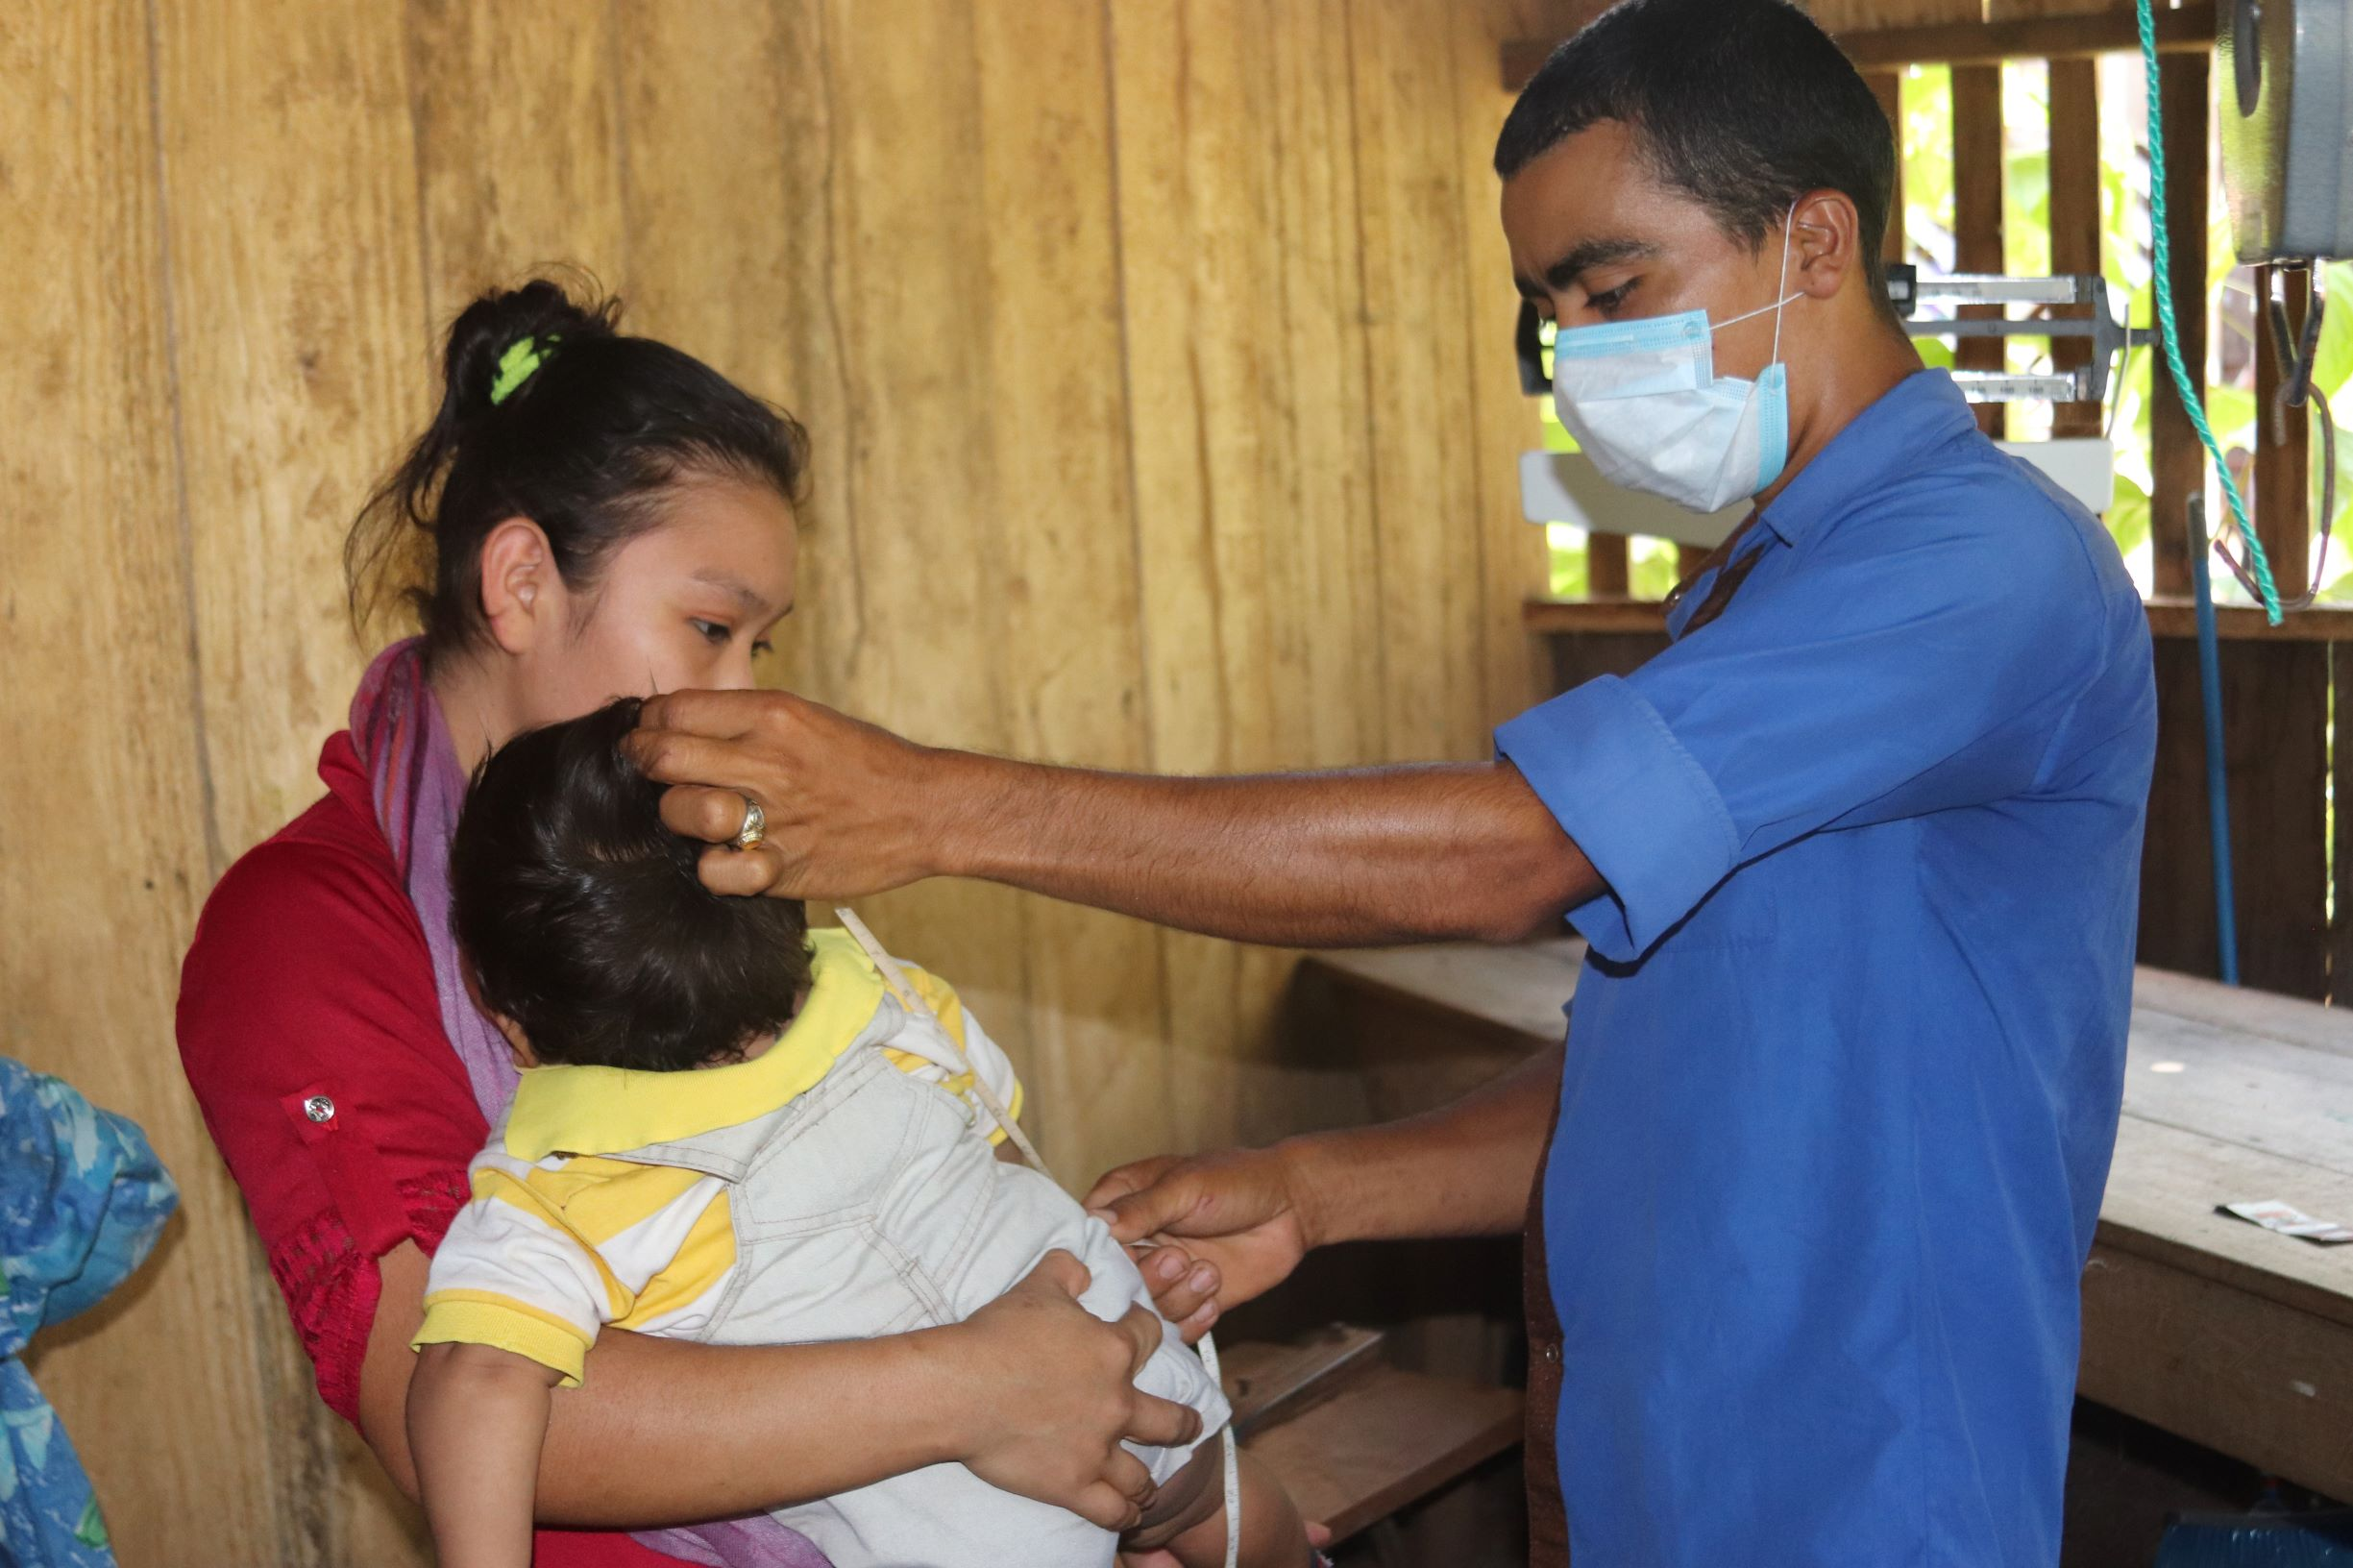 A community health worker measuring height of a baby.